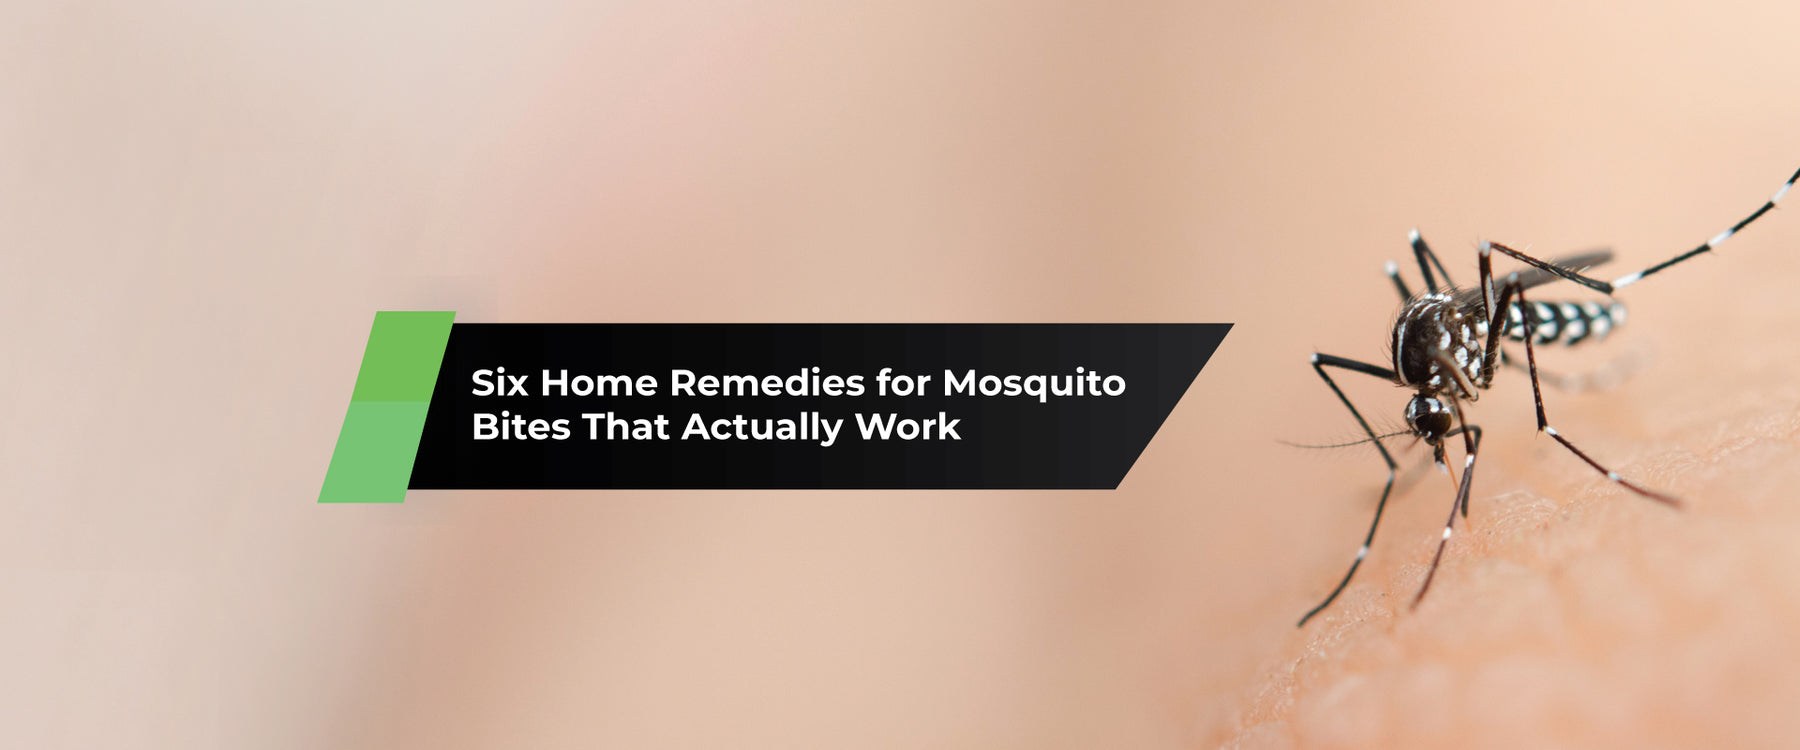 Six Home Remedies for Mosquito Bites That Actually Work